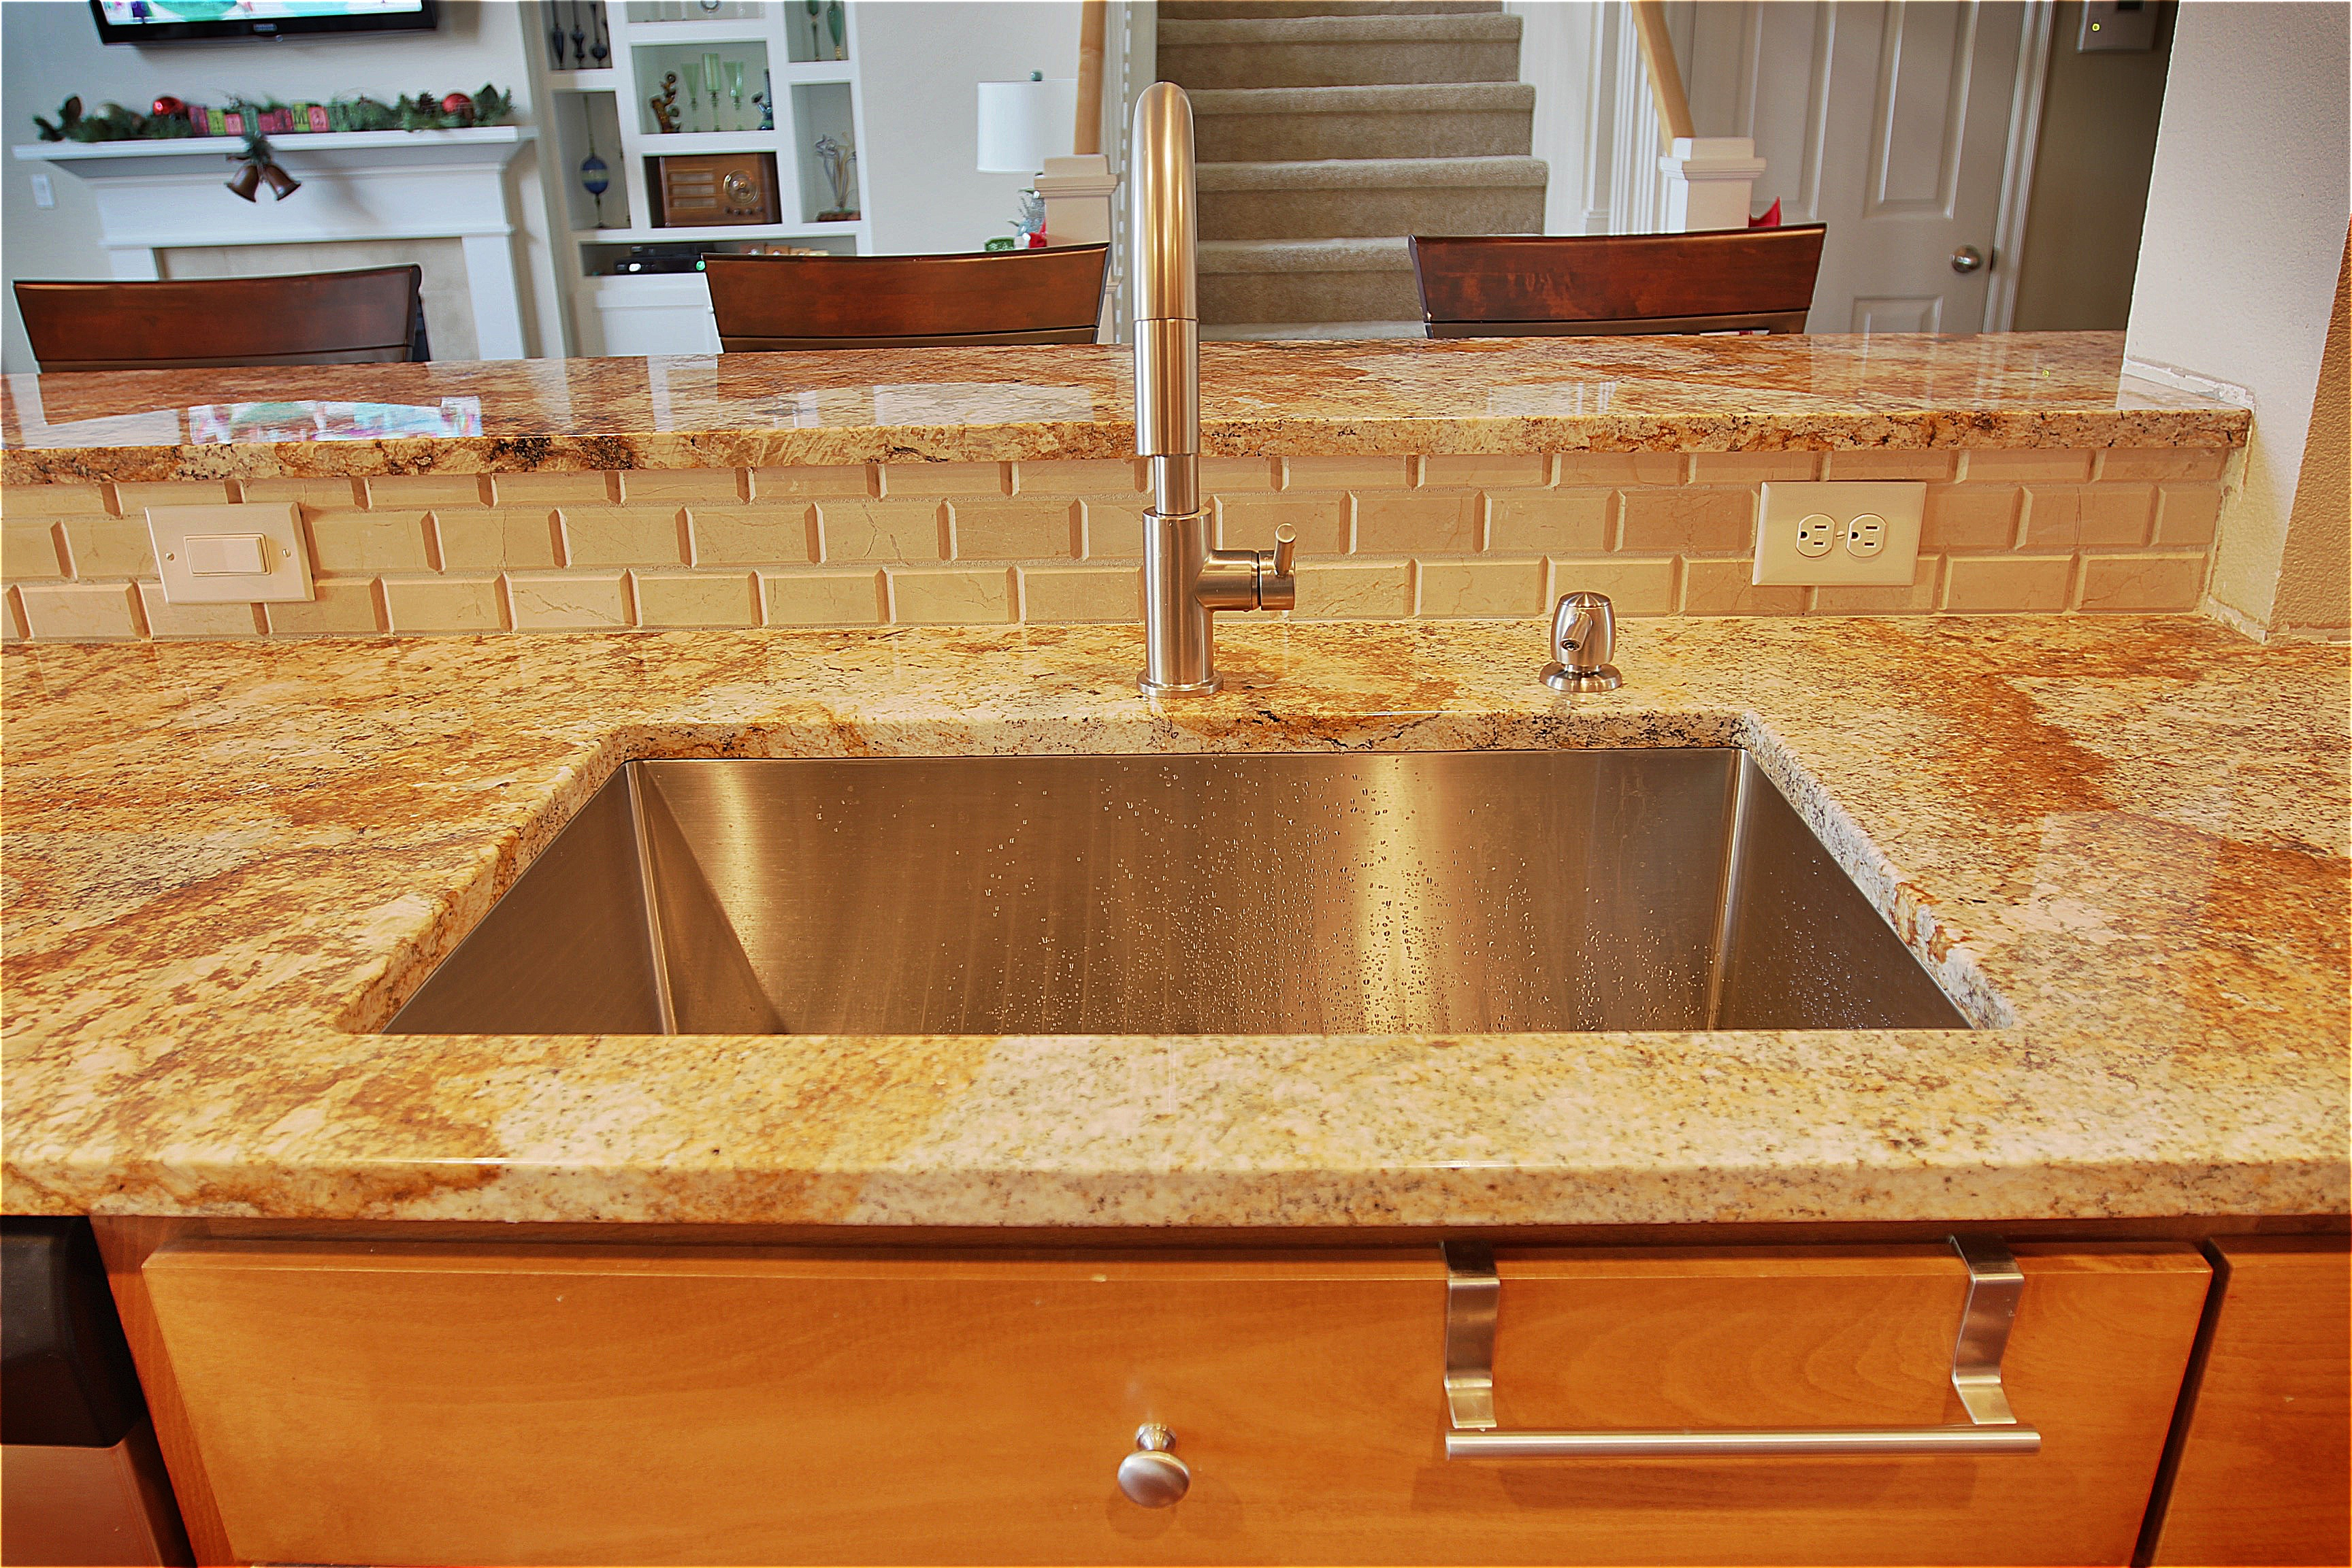 Picture of: Undermount Sink Failure In Granite And Quartz